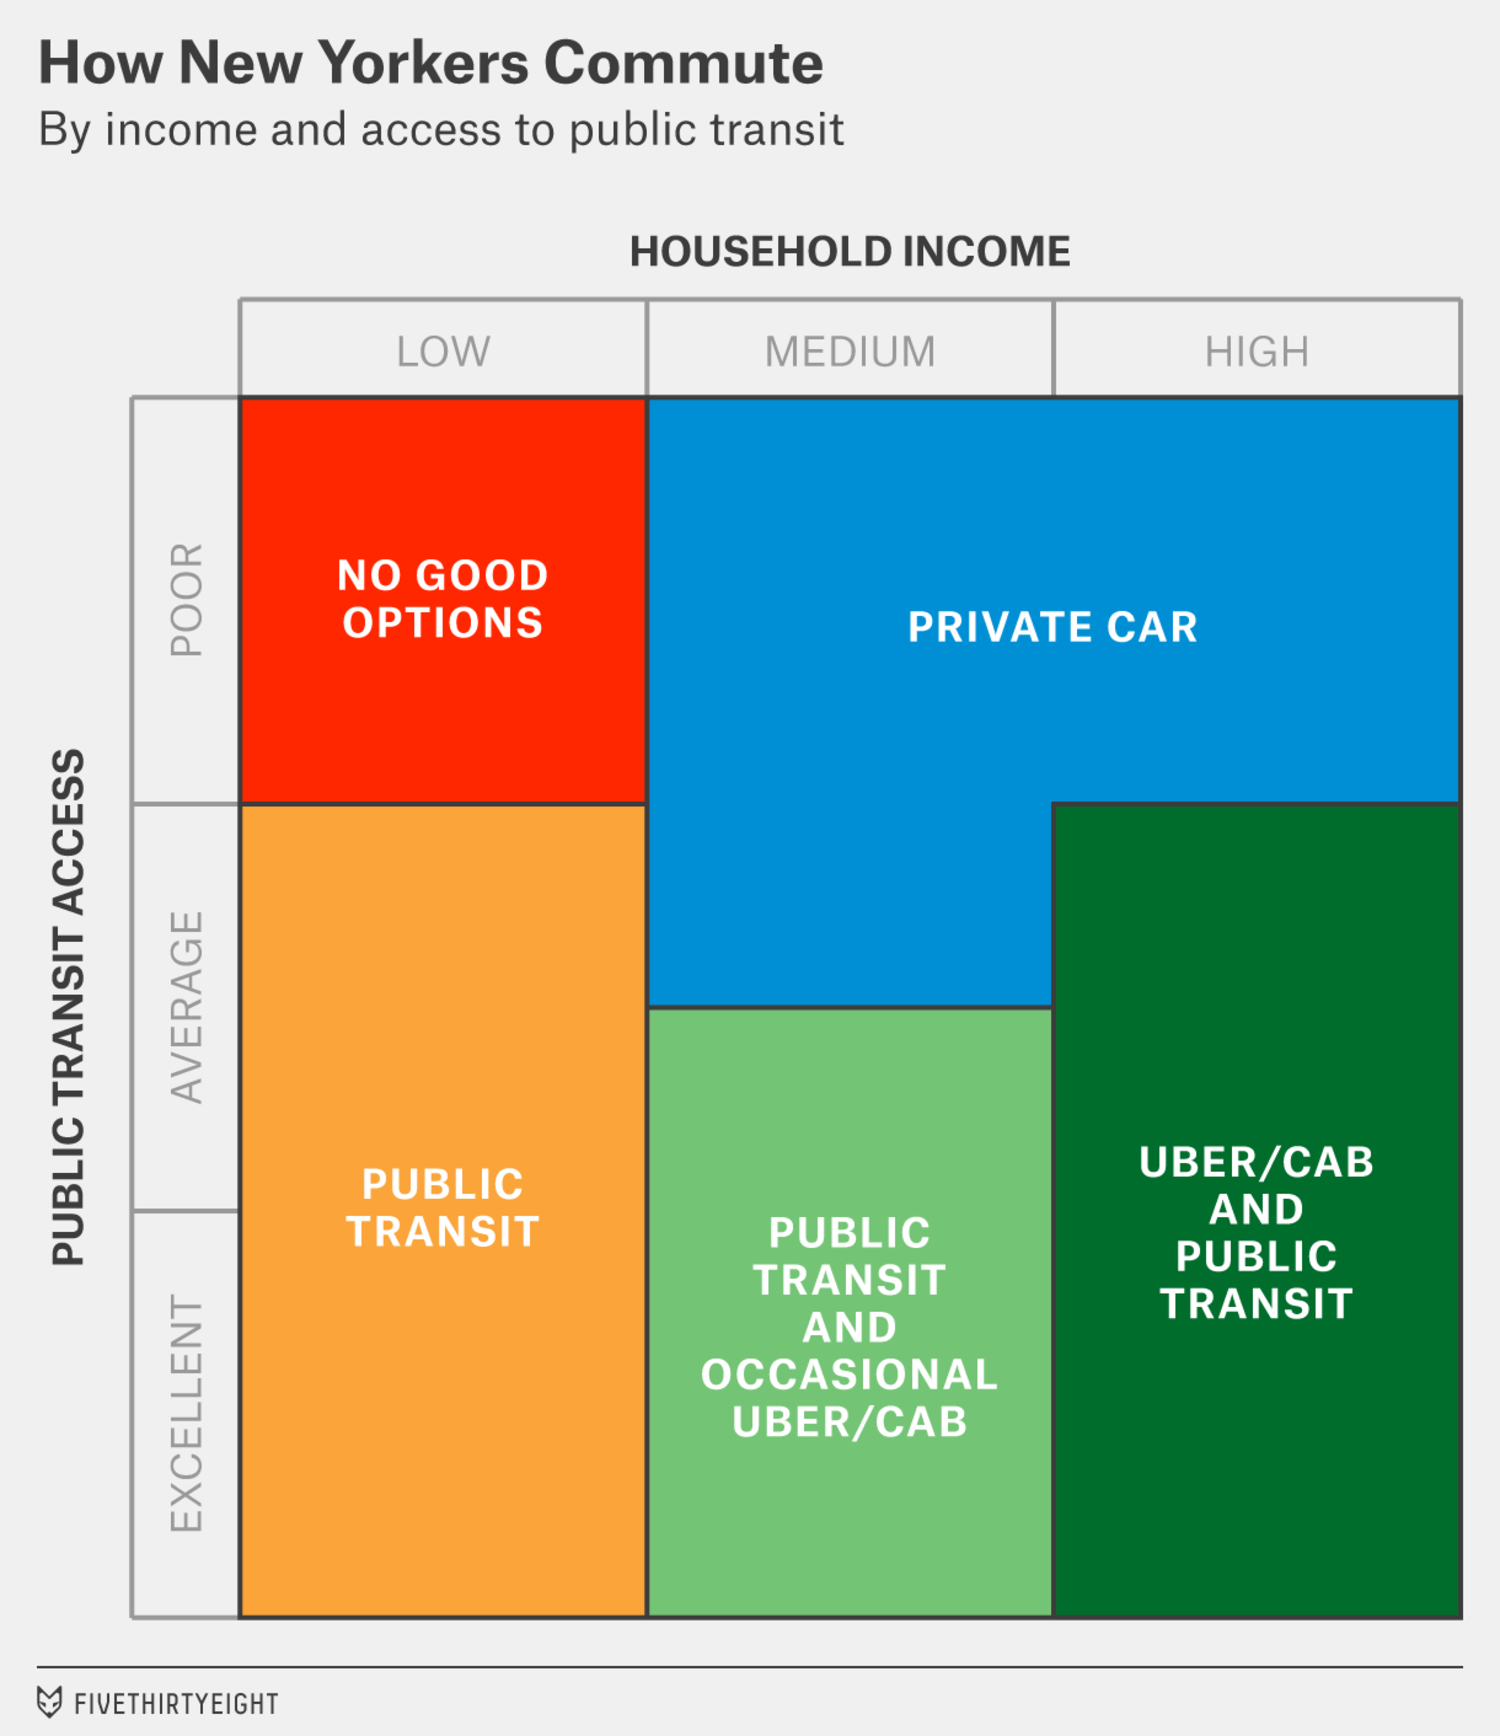 How New Yorkers Commute, By Income and Access to Public Transit